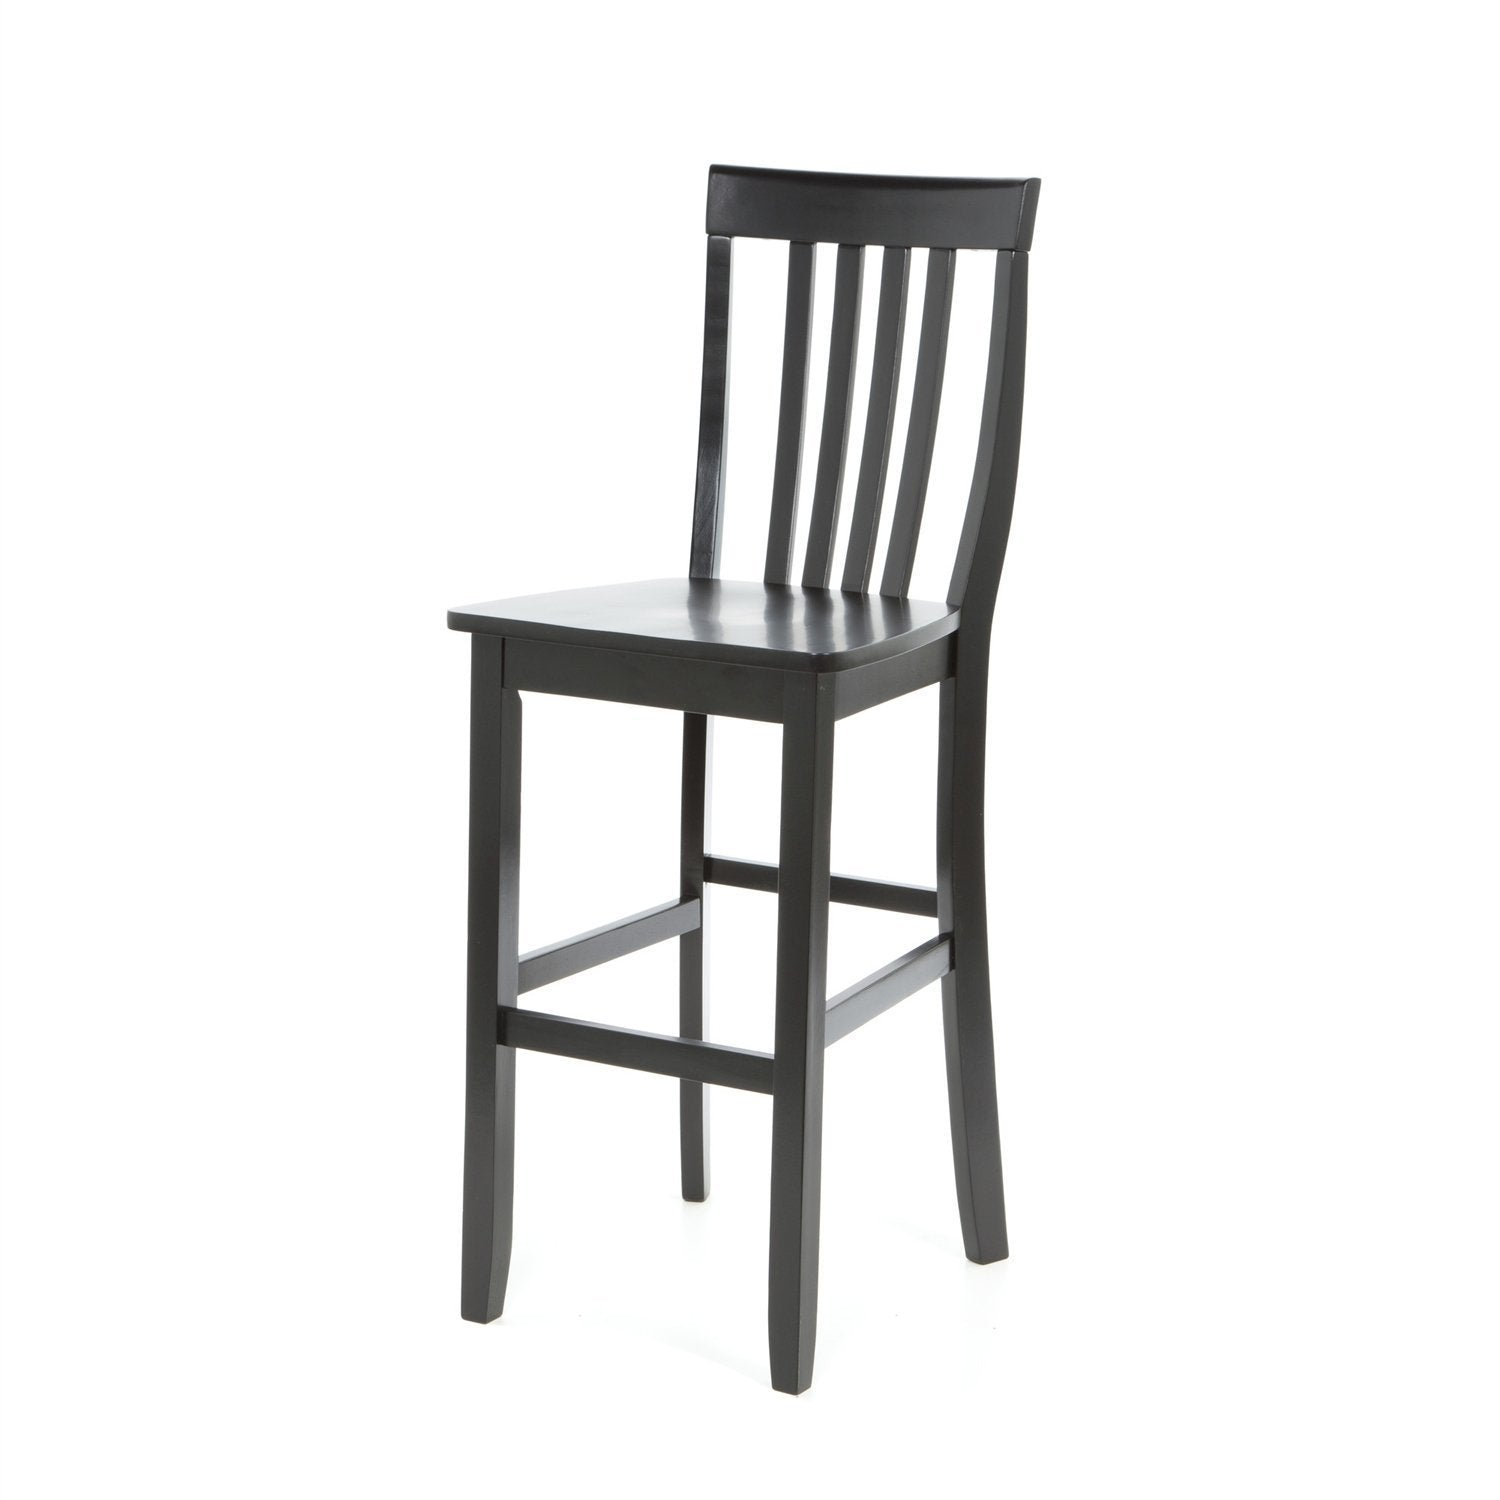 Caledfwlch Barstool (Set of 2).